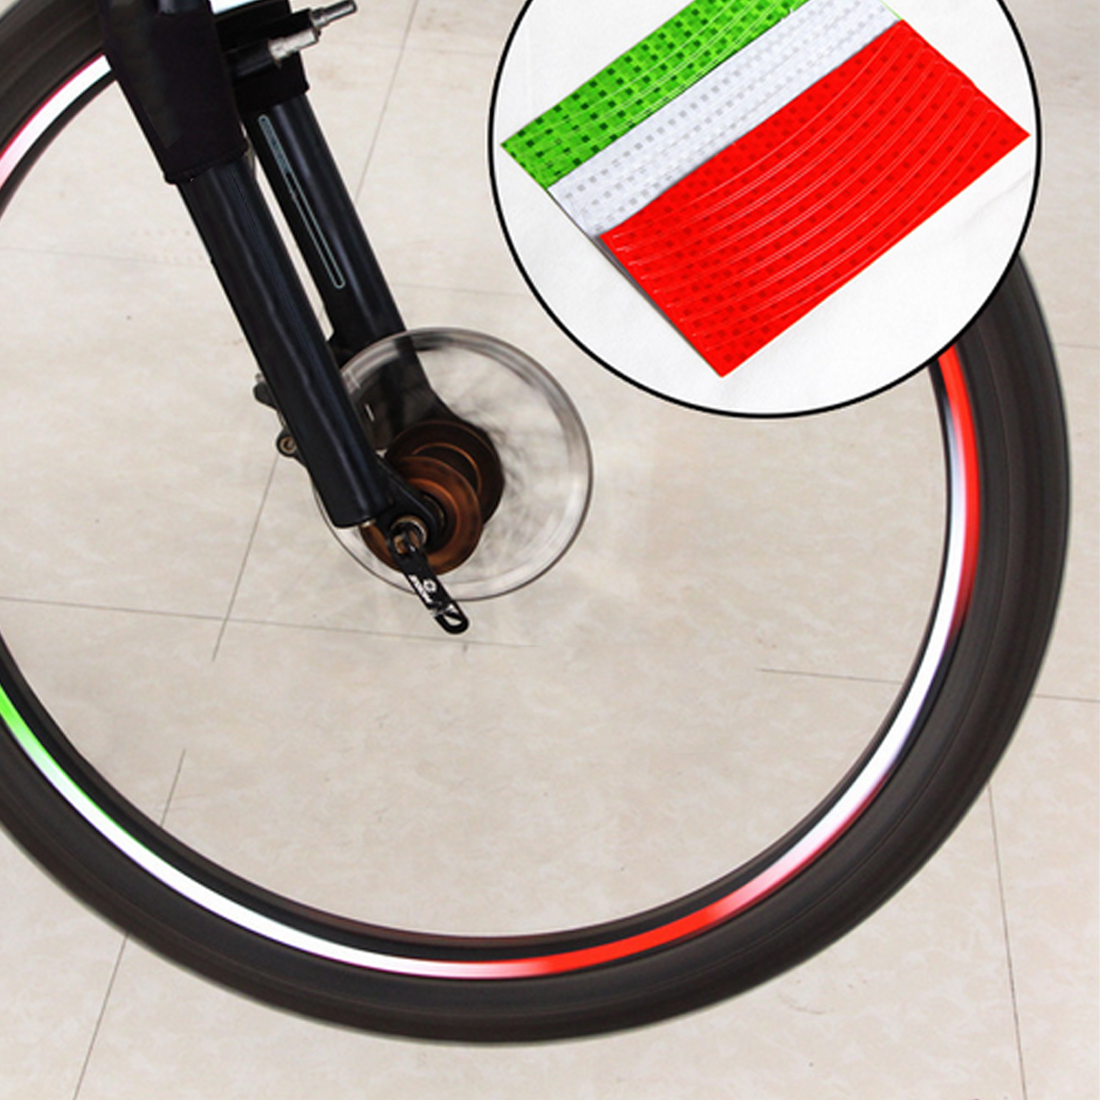 Dewtreetali New Arrival Fluorescent MTB Bike Bicycle Motorcycle Wheel Tire Tyre Reflective Stickers Decal Tape Safety Silver